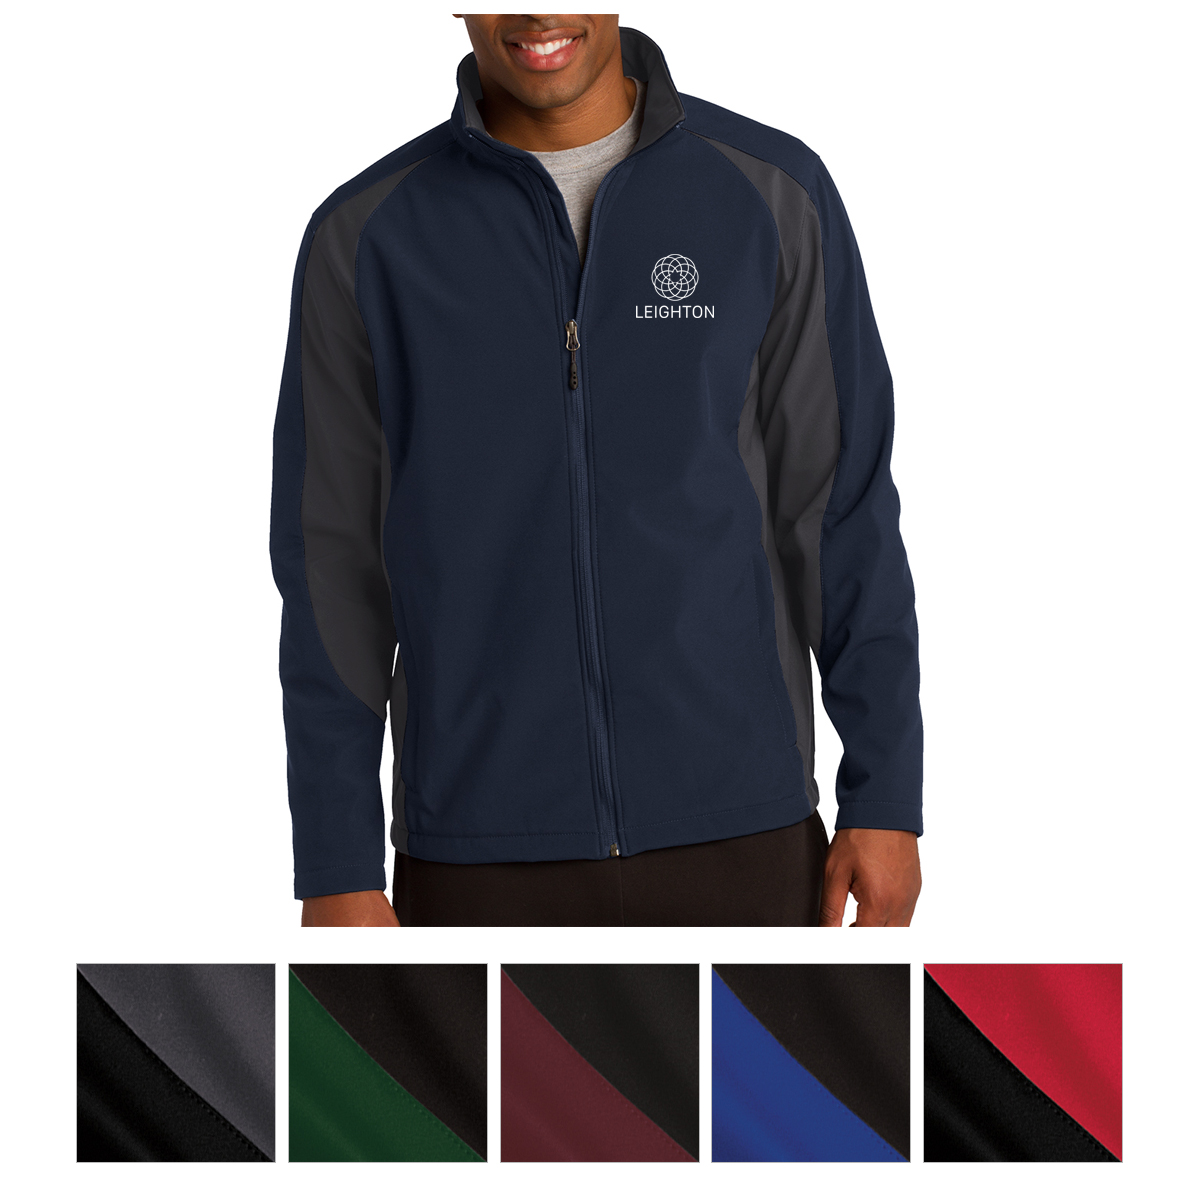 Jackets Sport Tek Colorblock Soft Shell Jacket 0st970bkigxs A sport coat, also called a sport jacket (sports coat or sports jacket in american english), is a men's smart casual lounge jacket designed to be worn on its own without matching trousers, traditionally for sporting purposes. successories